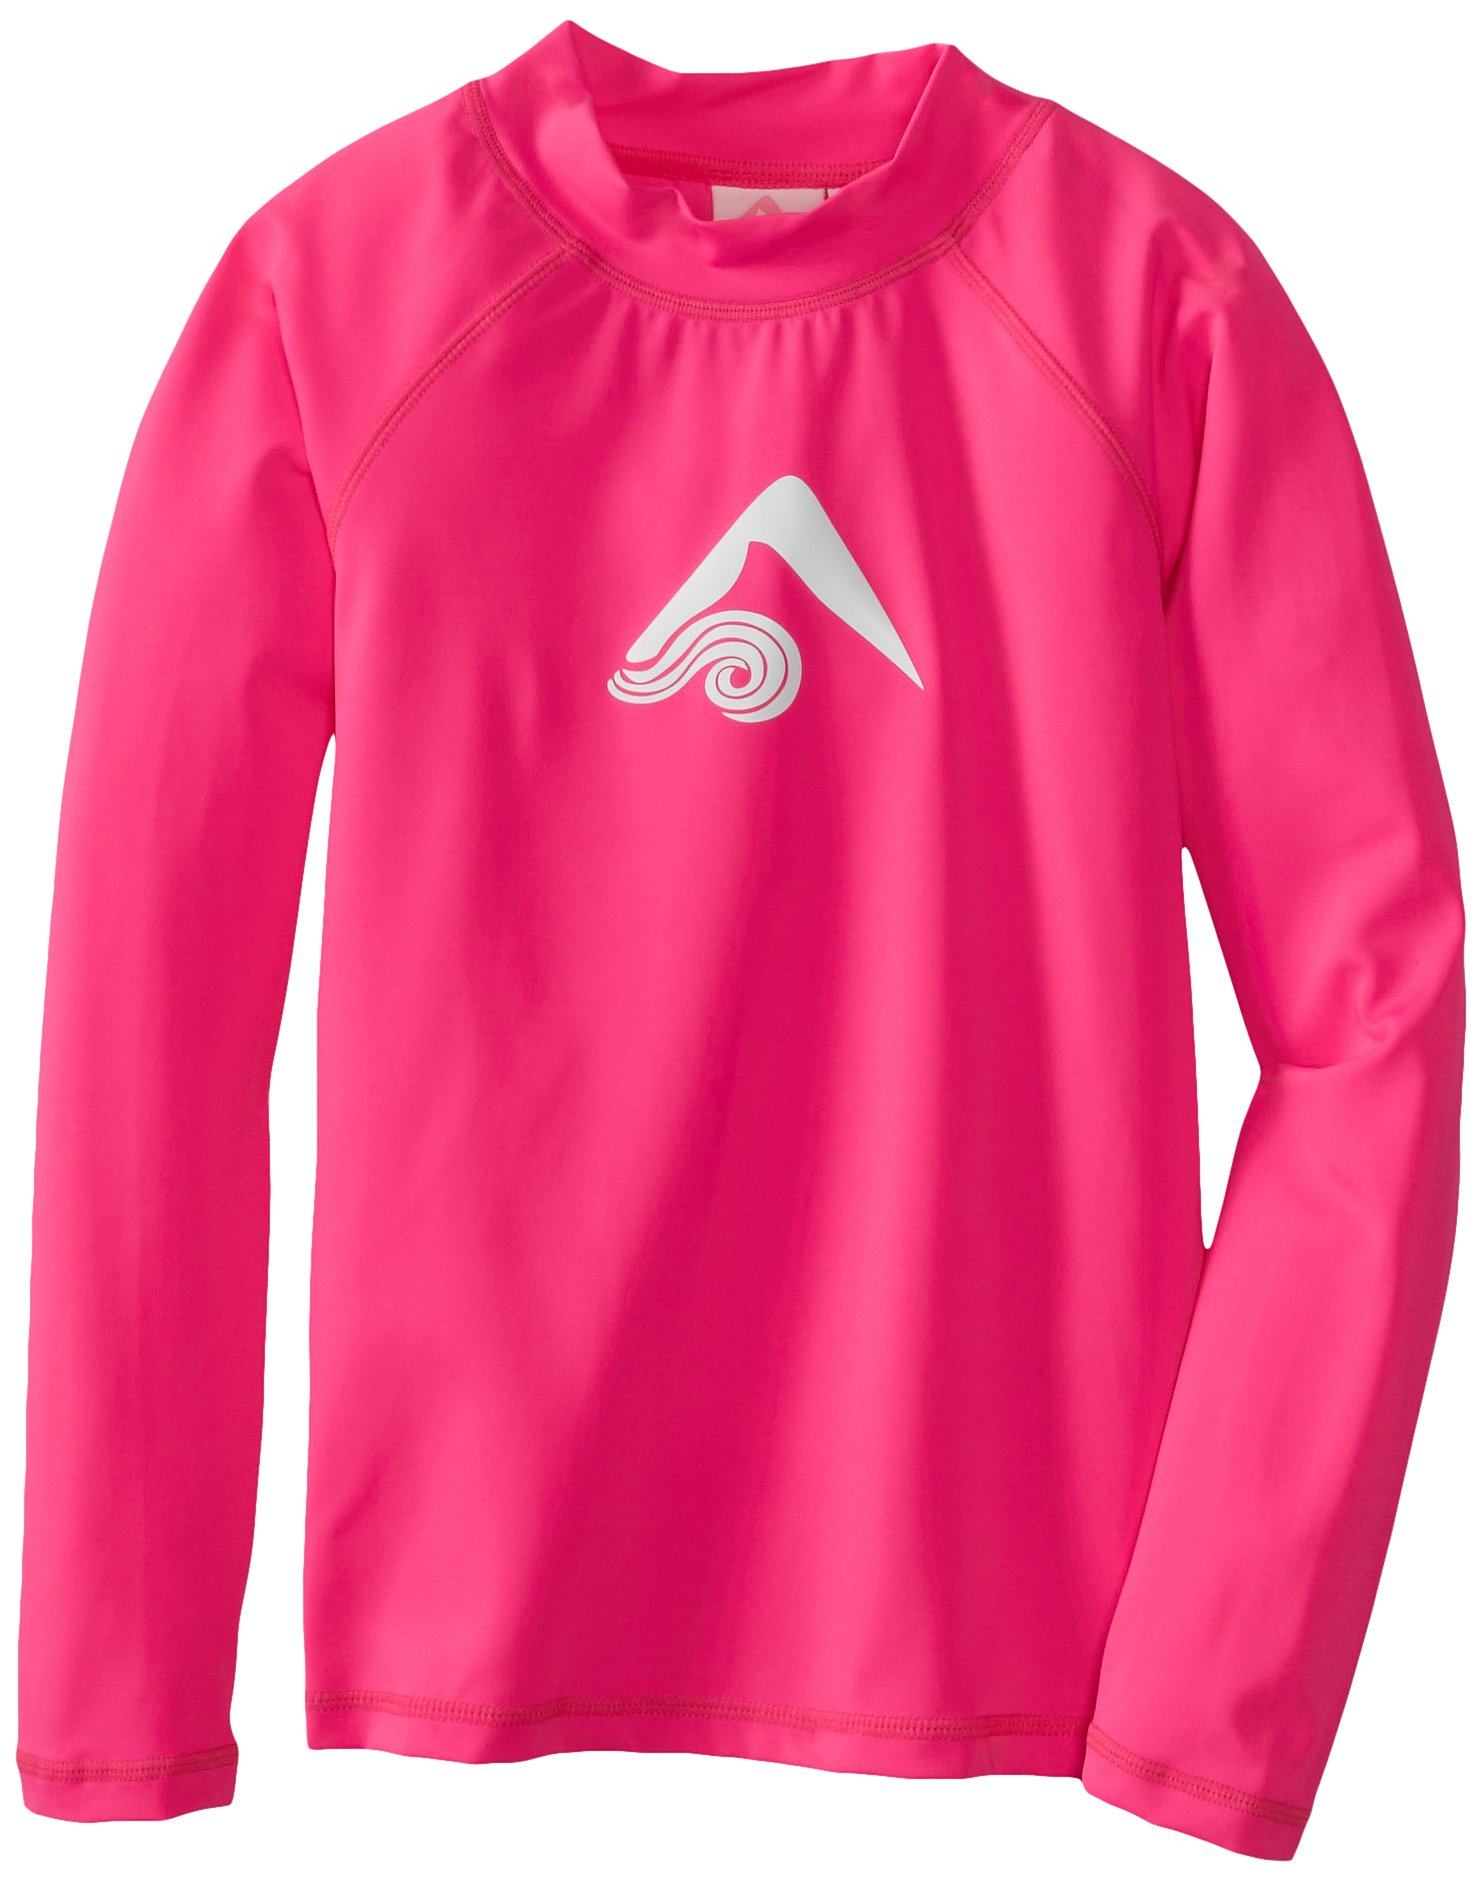 Kanu Surf Big Girls' Keri Long Sleeve Rashguards, Neon Pink, X-Small (6)